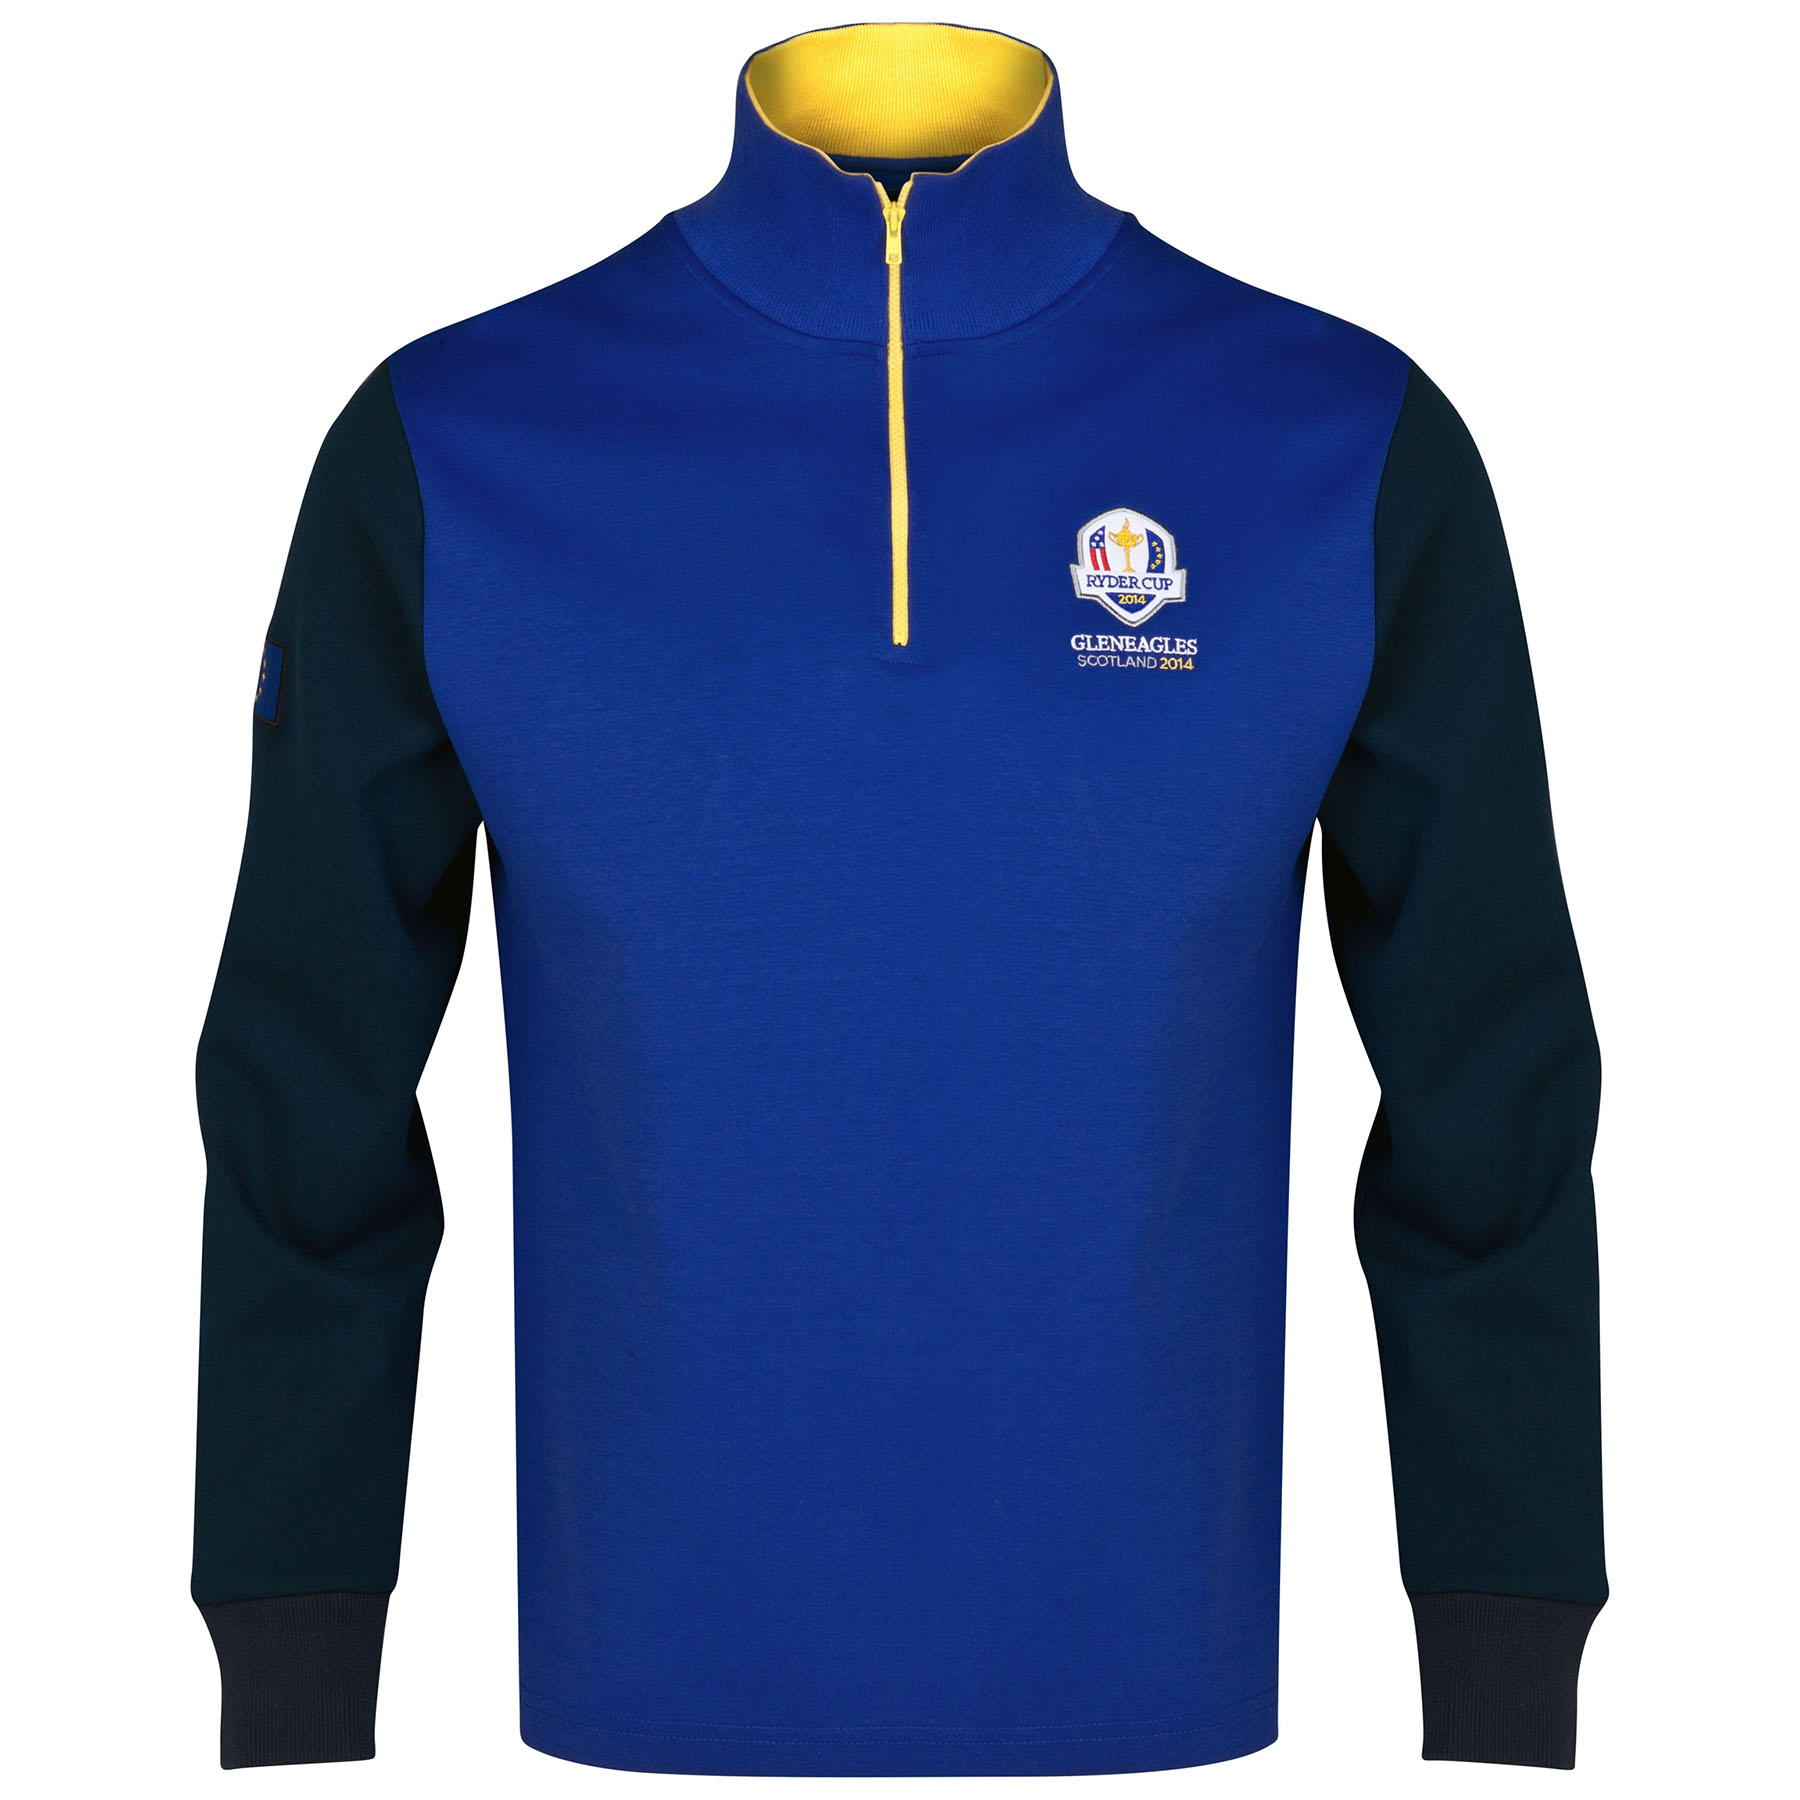 The 2014 Ryder Cup Fan Range Tech Fleece